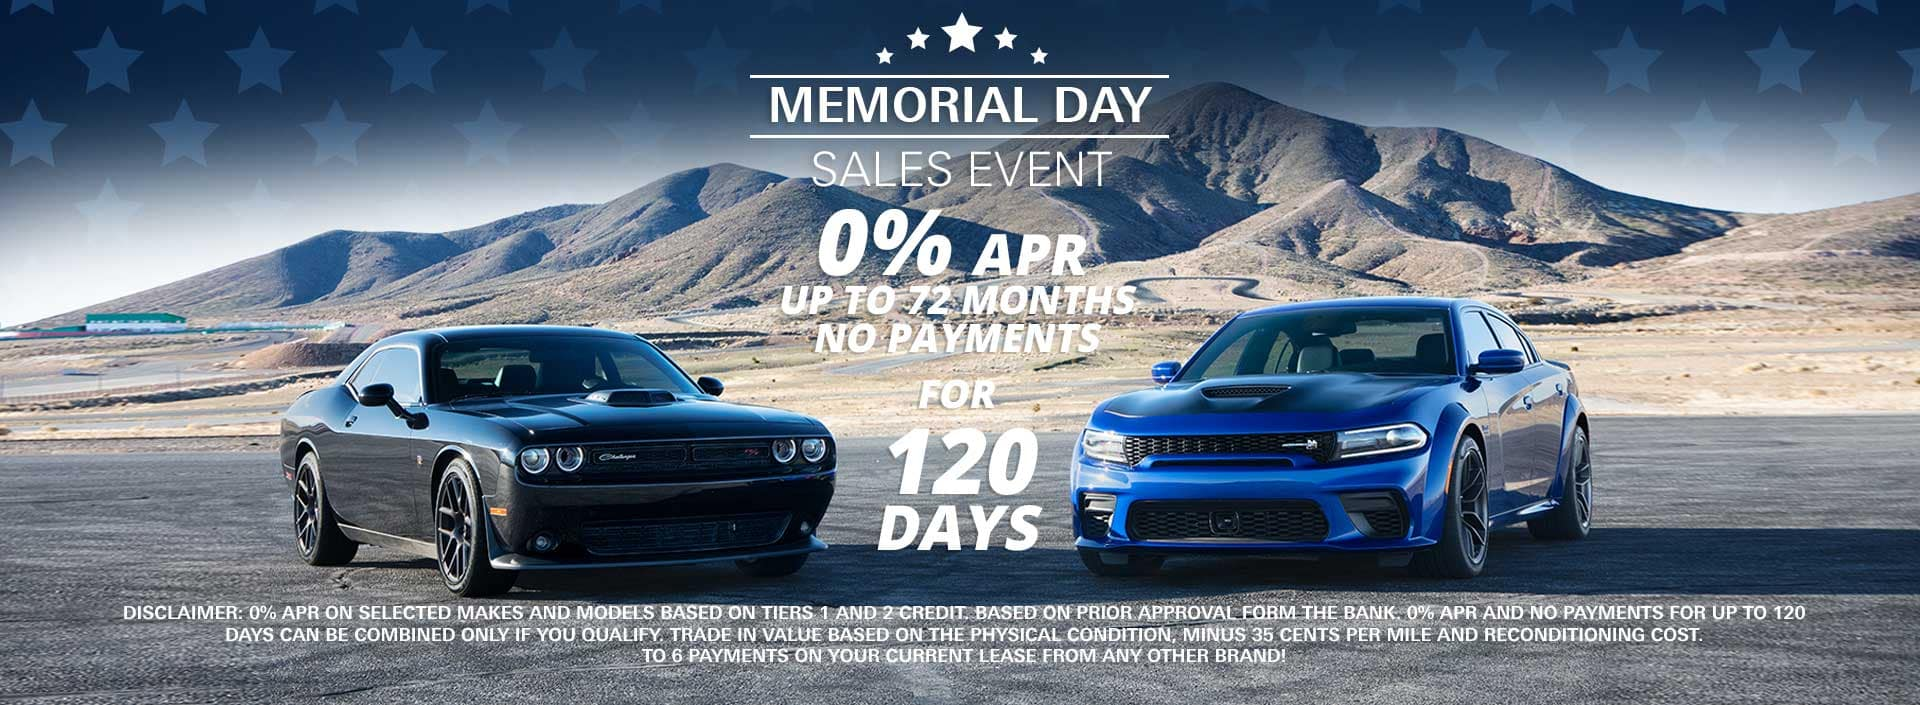 dodge-new-memorial-day-sale-0apr-sales-event